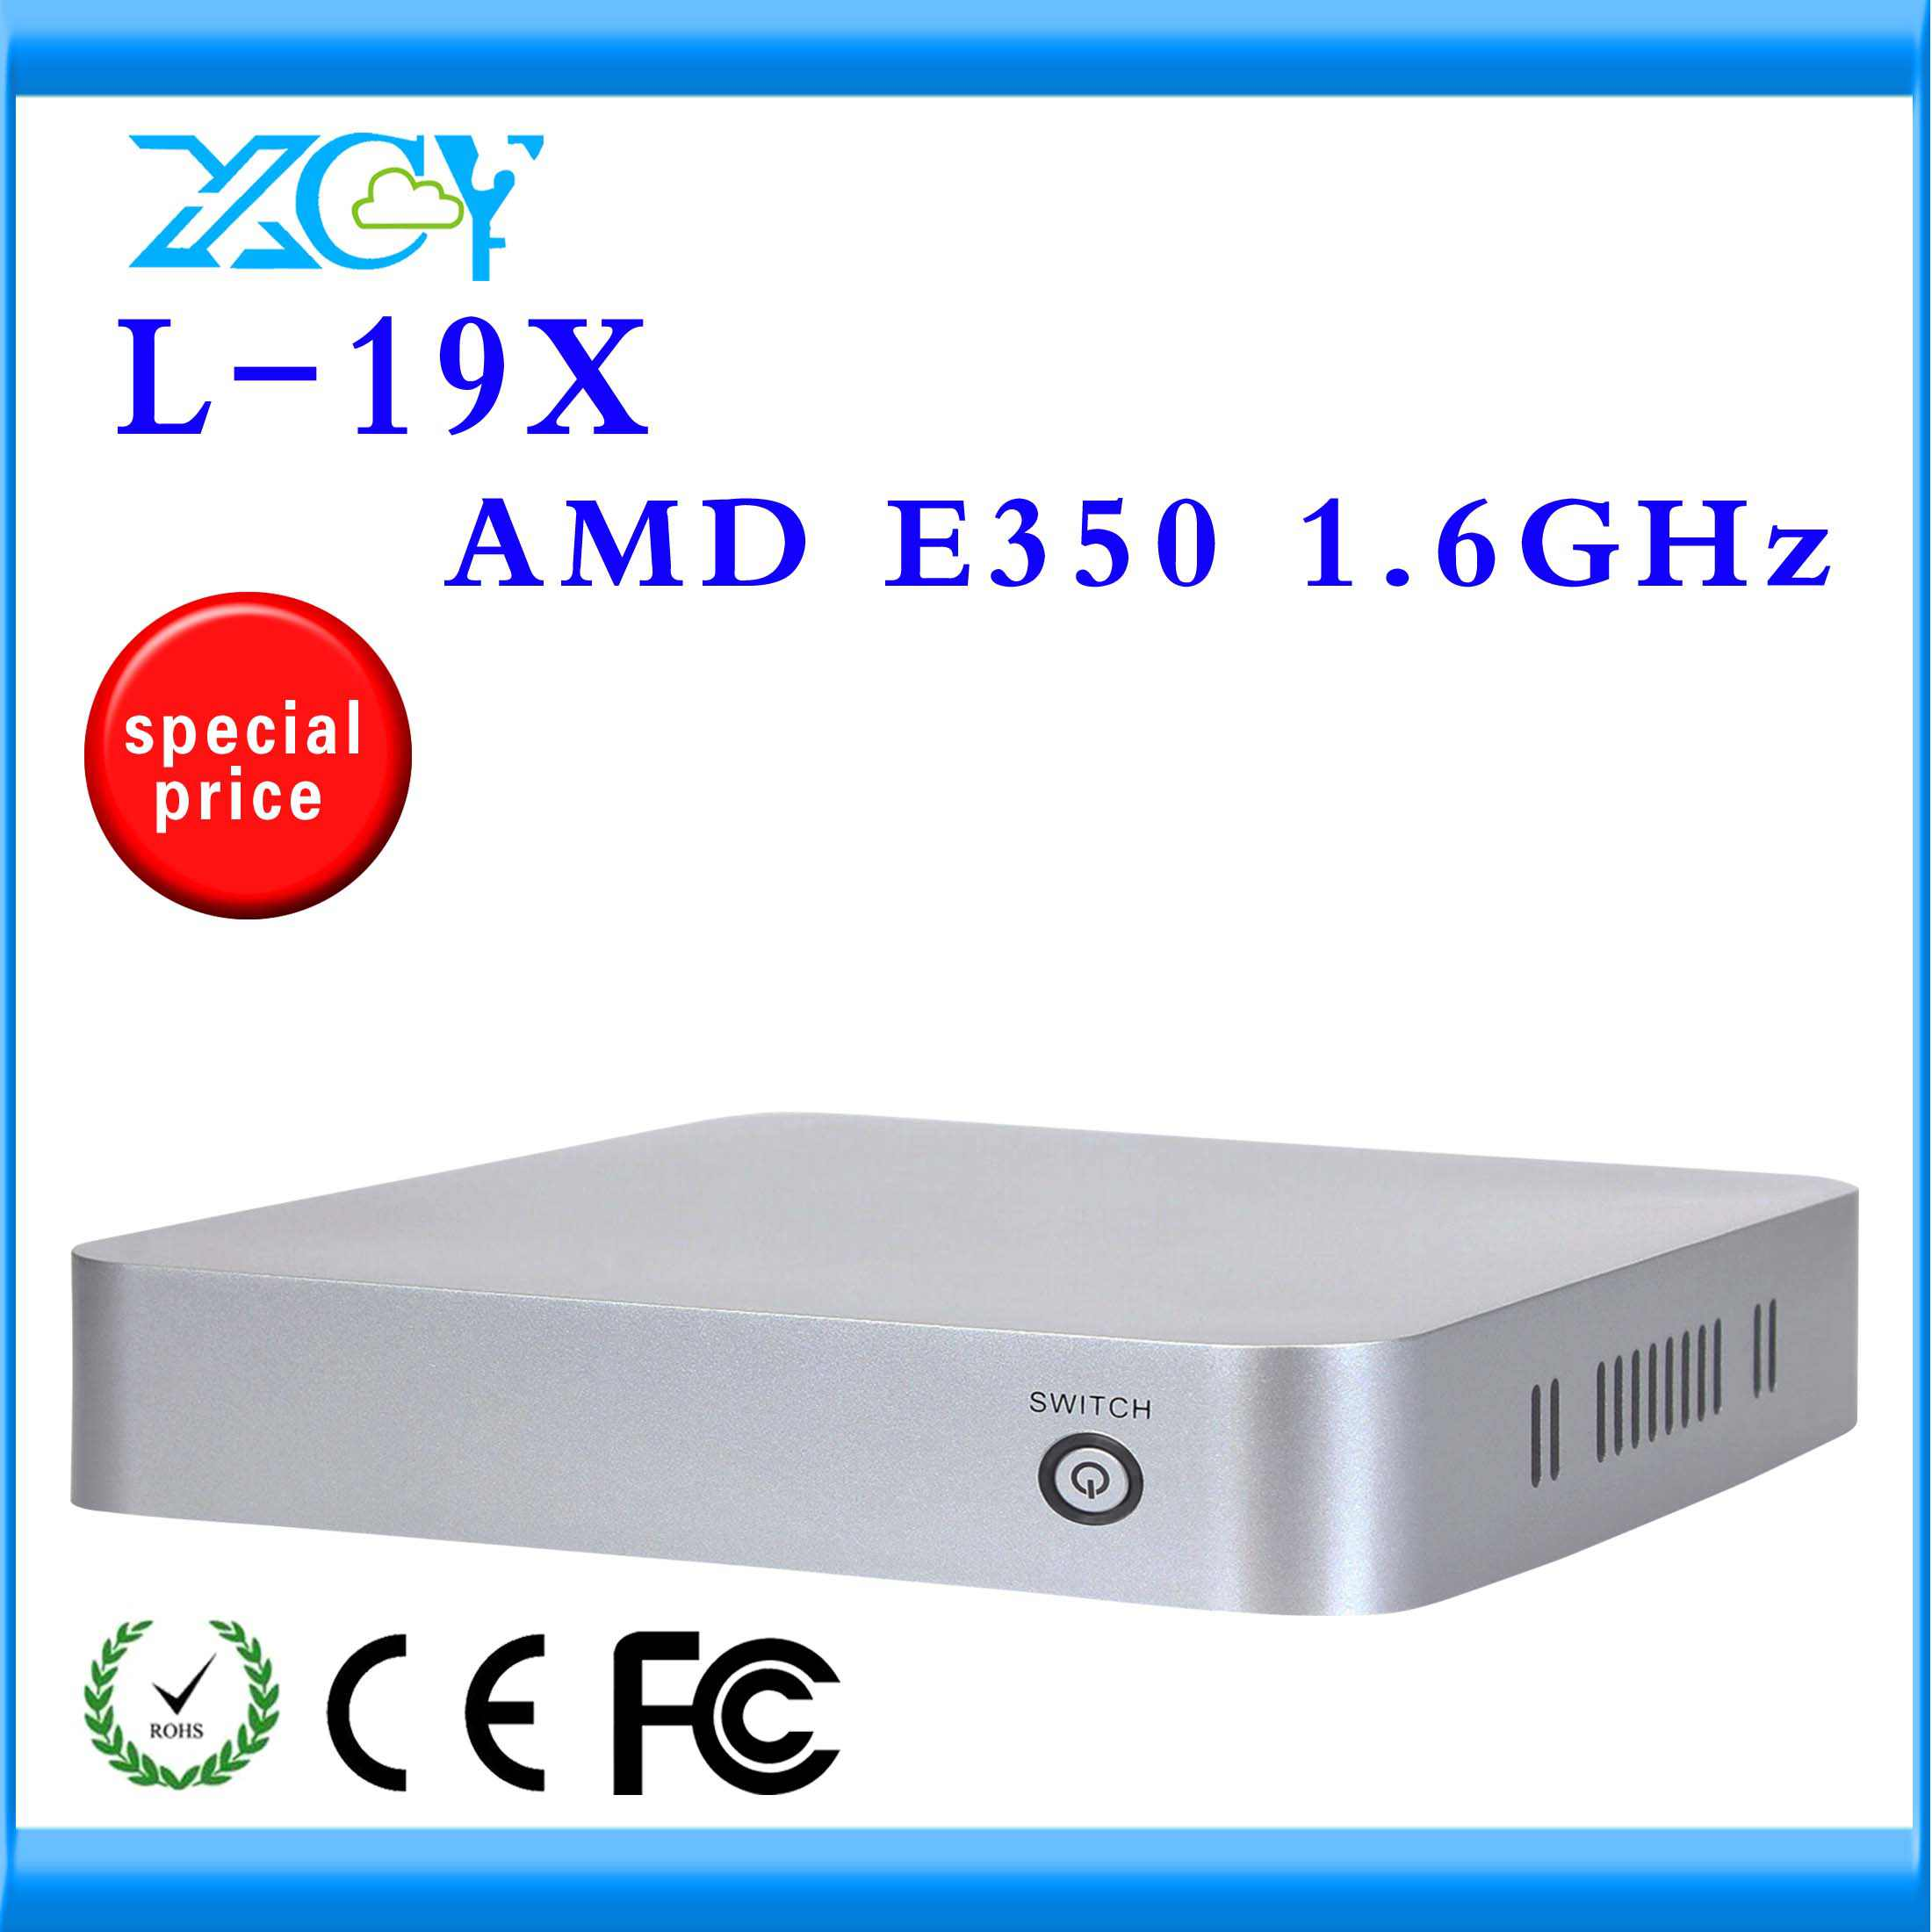 XCY E350 cpu Dual core 8G SSD 2G RAM industrial pc net computer nework pc with with 4*USB2.0,1*HDMI 1.3, 2*MIC,2*SPK COMPUTER(China (Mainland))